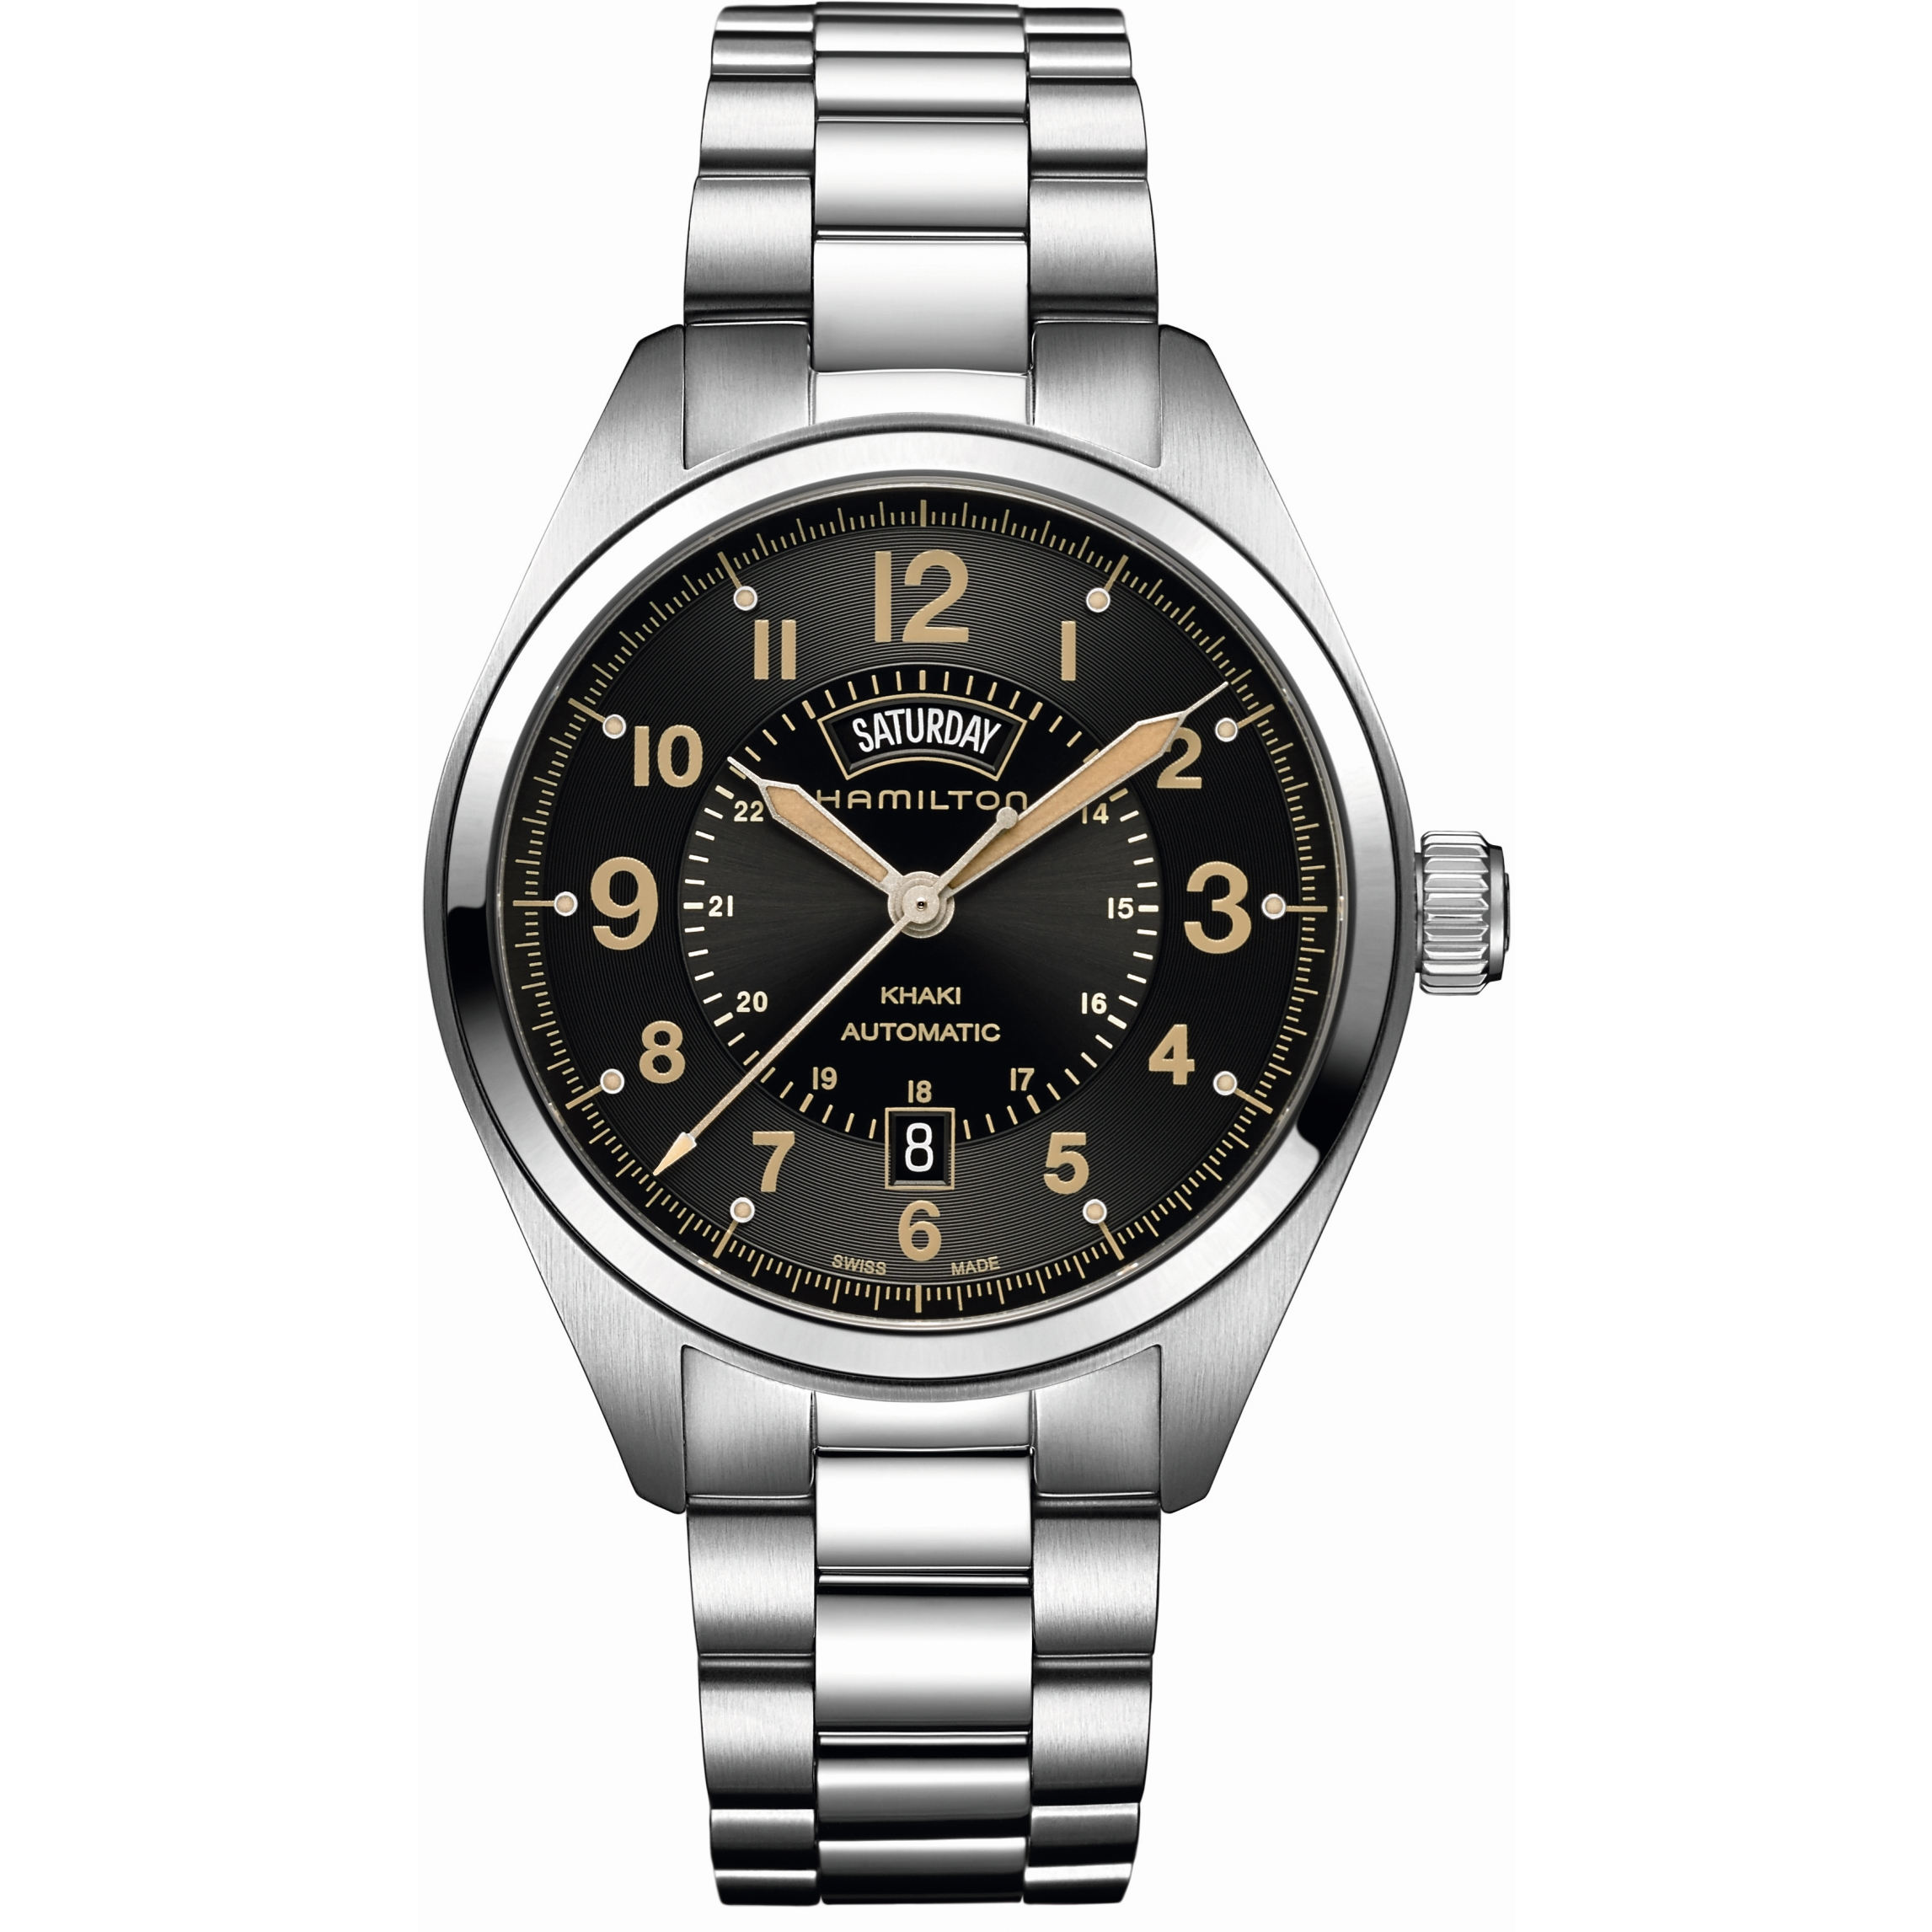 8e9c6cc8da90 Gents Hamilton Khaki Field Day-Date Watch (H70505933)